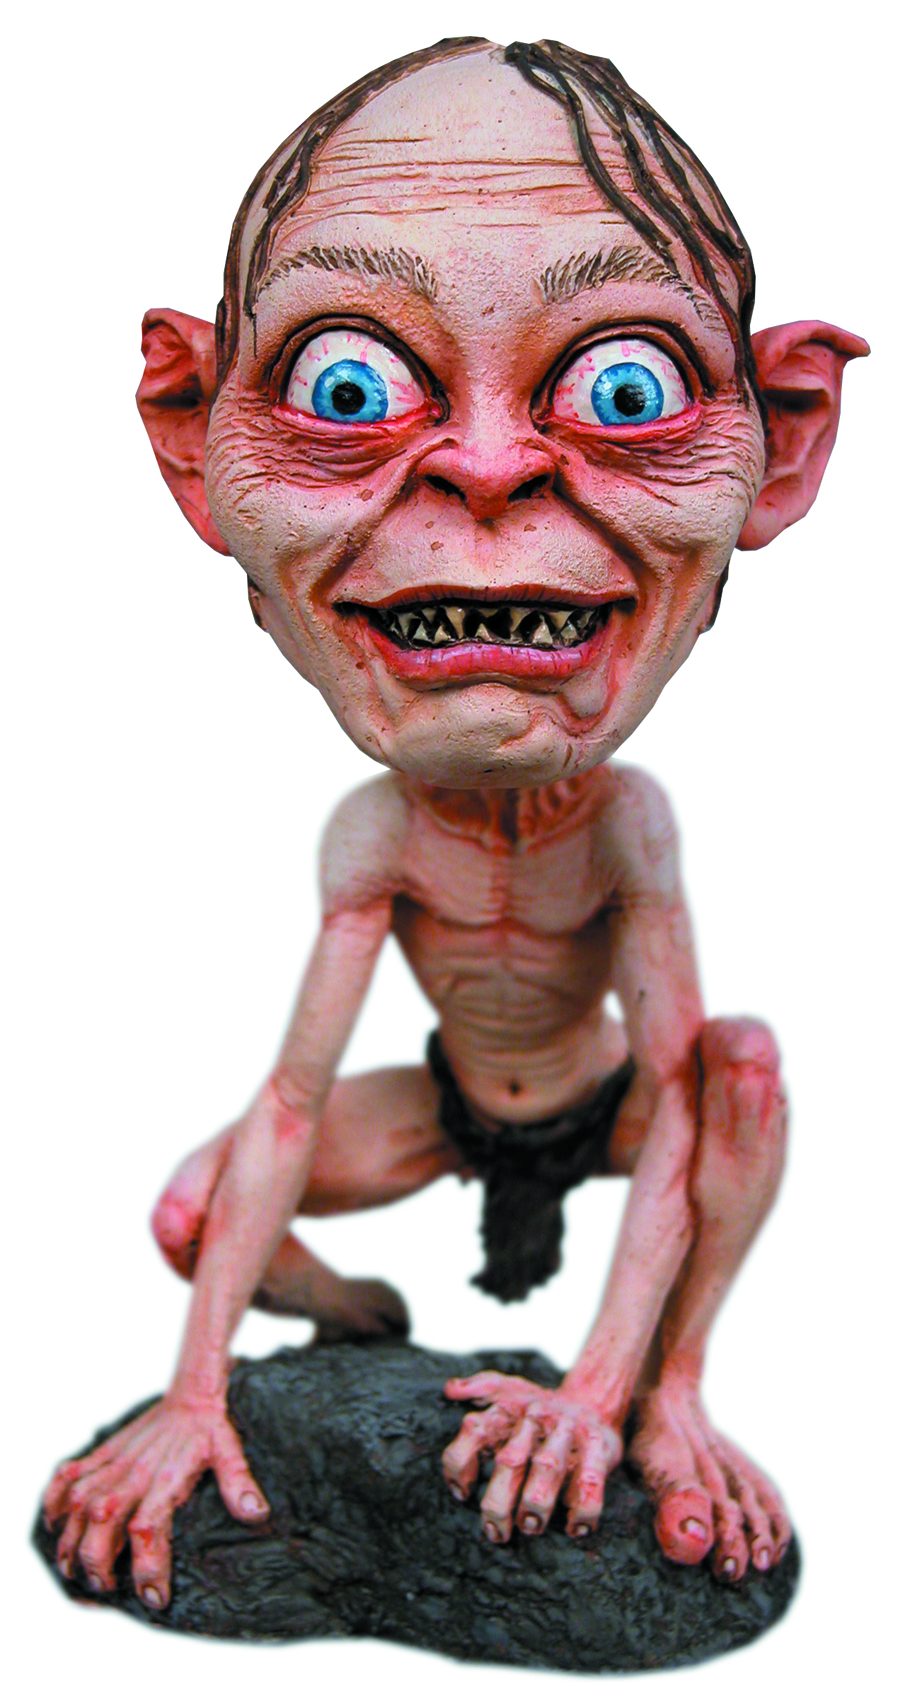 LOTR SMEAGOL HEAD KNOCKER